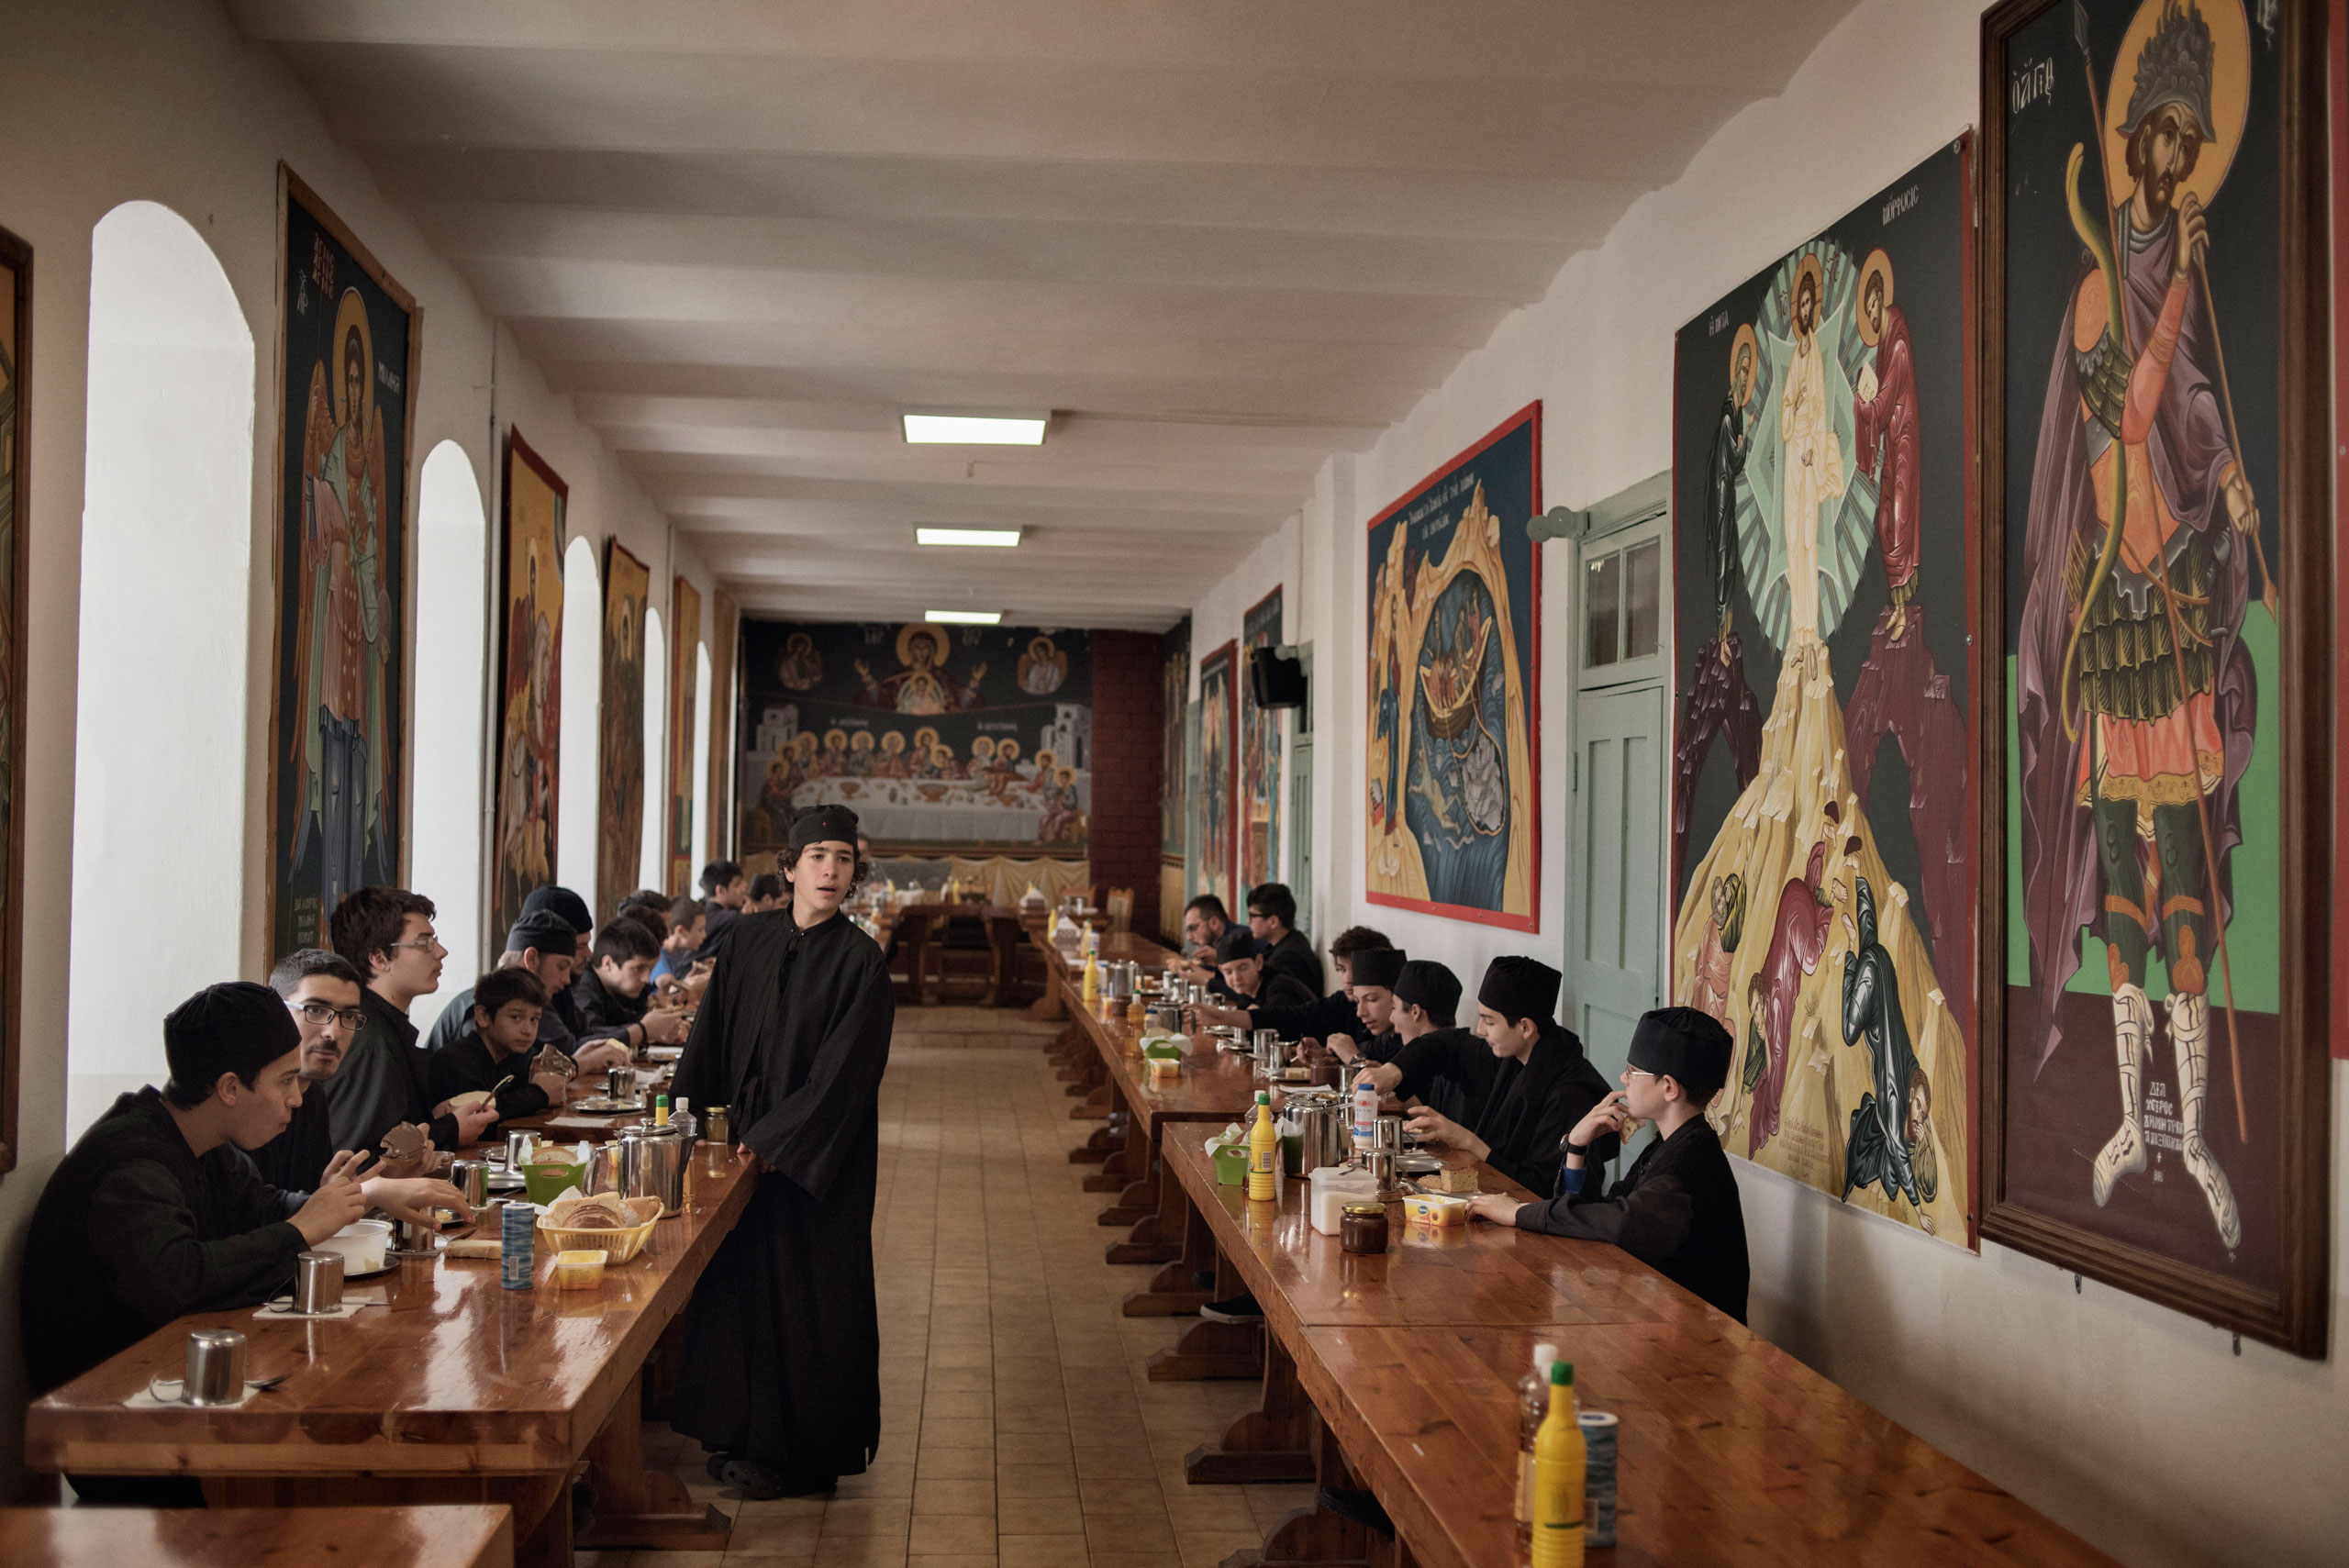 Students at the Athonias Ecclesiastical Academy, an all-boys boarding school in the Orthodox Christian monastic state of Mount Athos, in northern Greece, have breakfast at the school's communal dining hall, May 30, 2016.